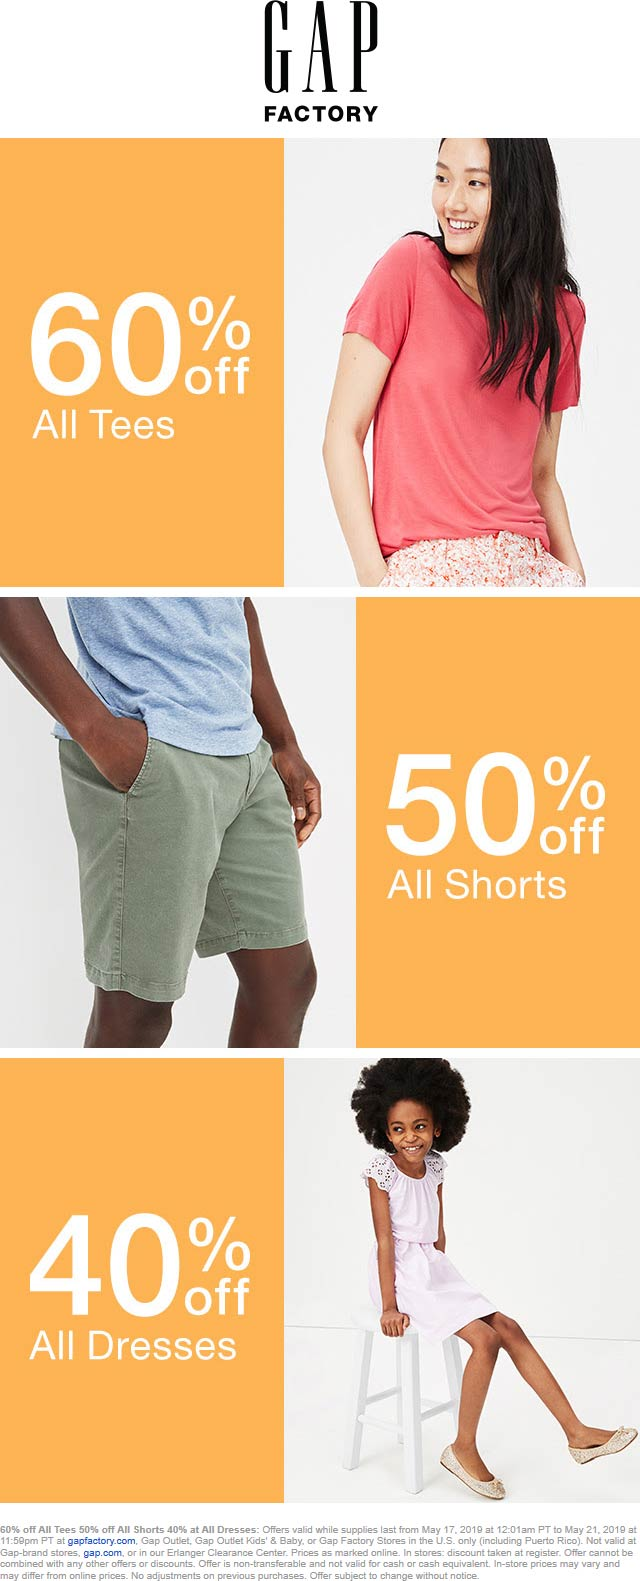 GapOutlet.com Promo Coupon 40-60% off at Gap Factory, Gap Outlet, Gap Outlet Kids & Baby, ditto online